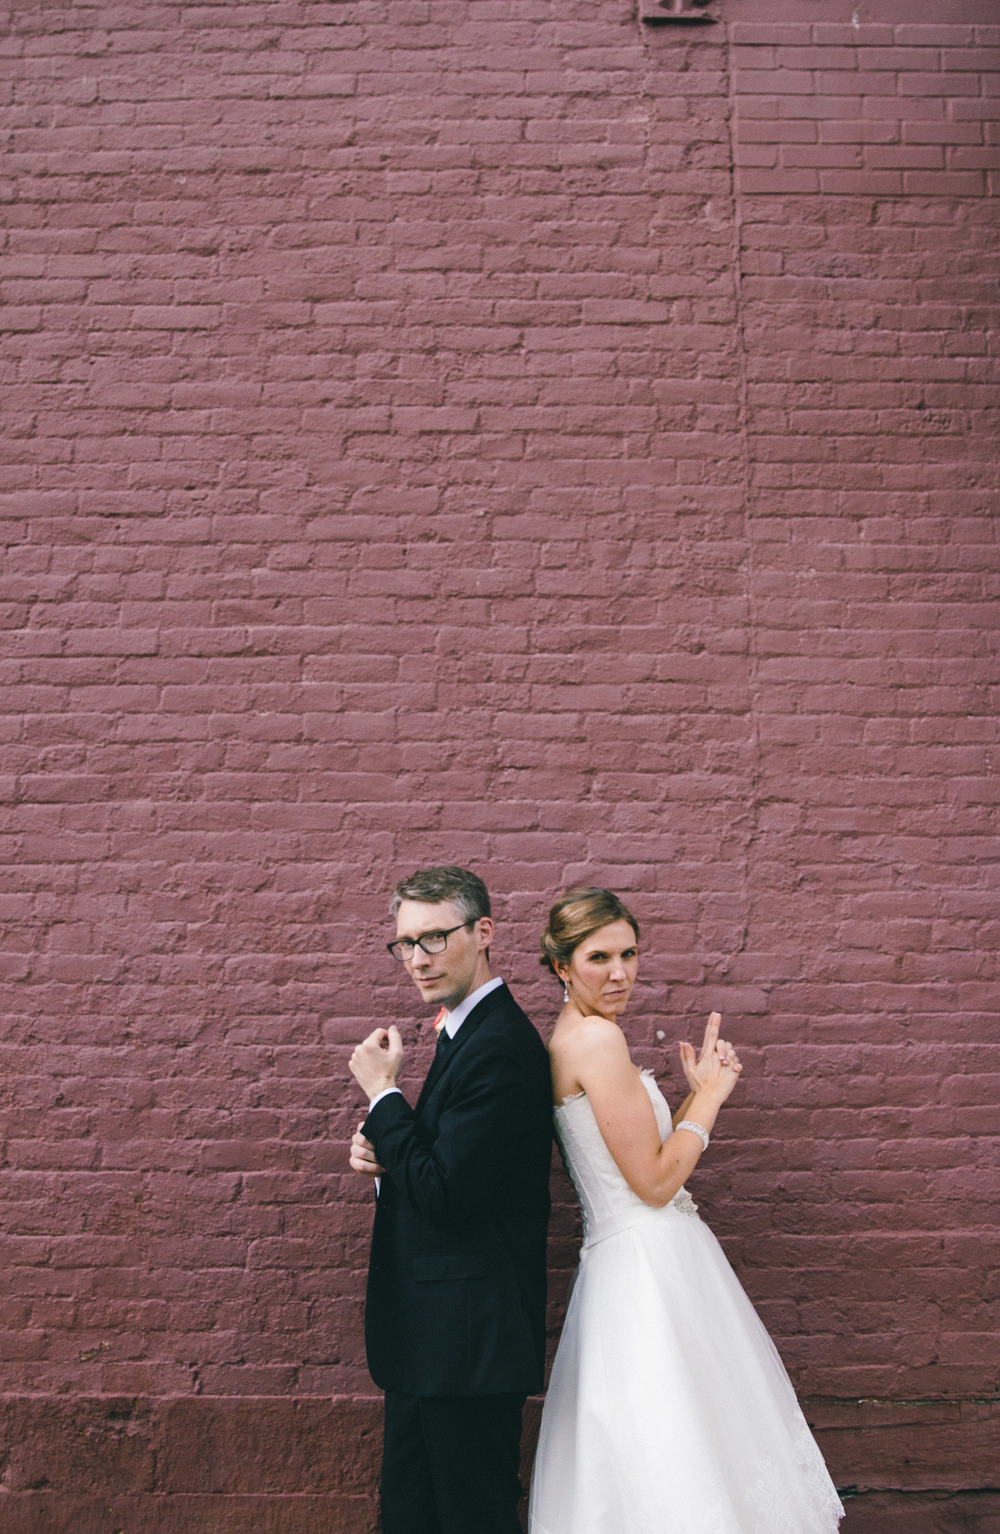 jeff-and-tess-wedding---may-30th-2015_17713598963_o.jpg